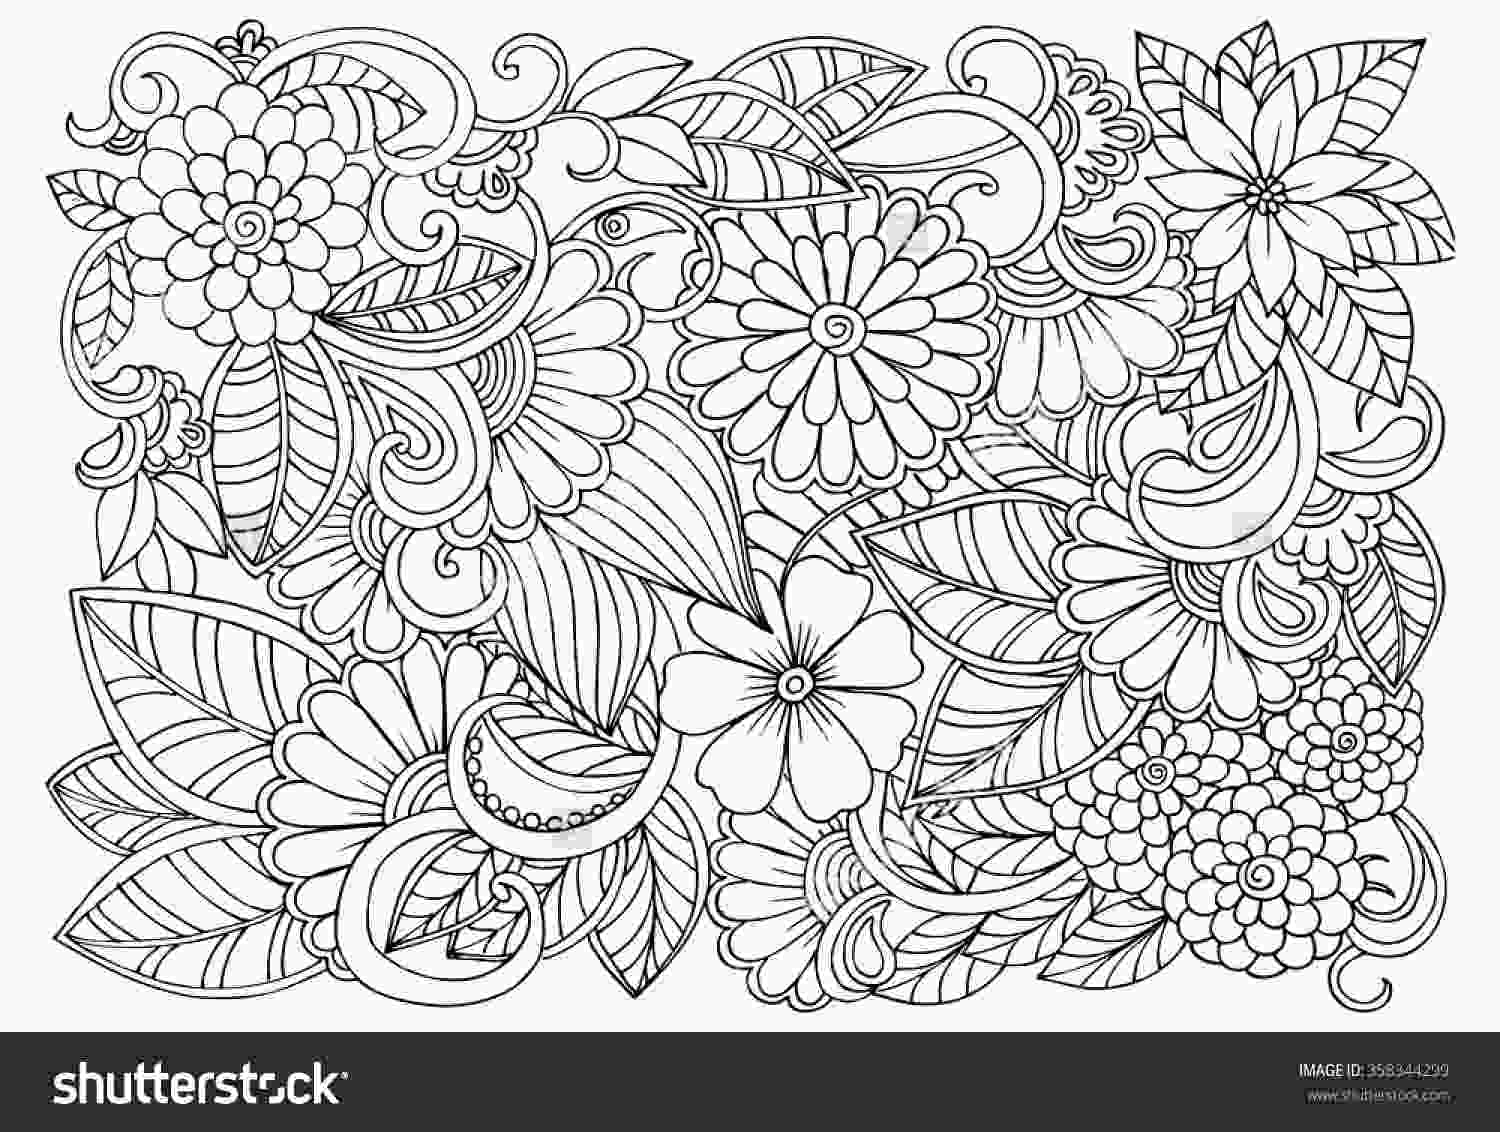 flower design coloring pages zentangle flowers coloring pages at getdrawingscom free